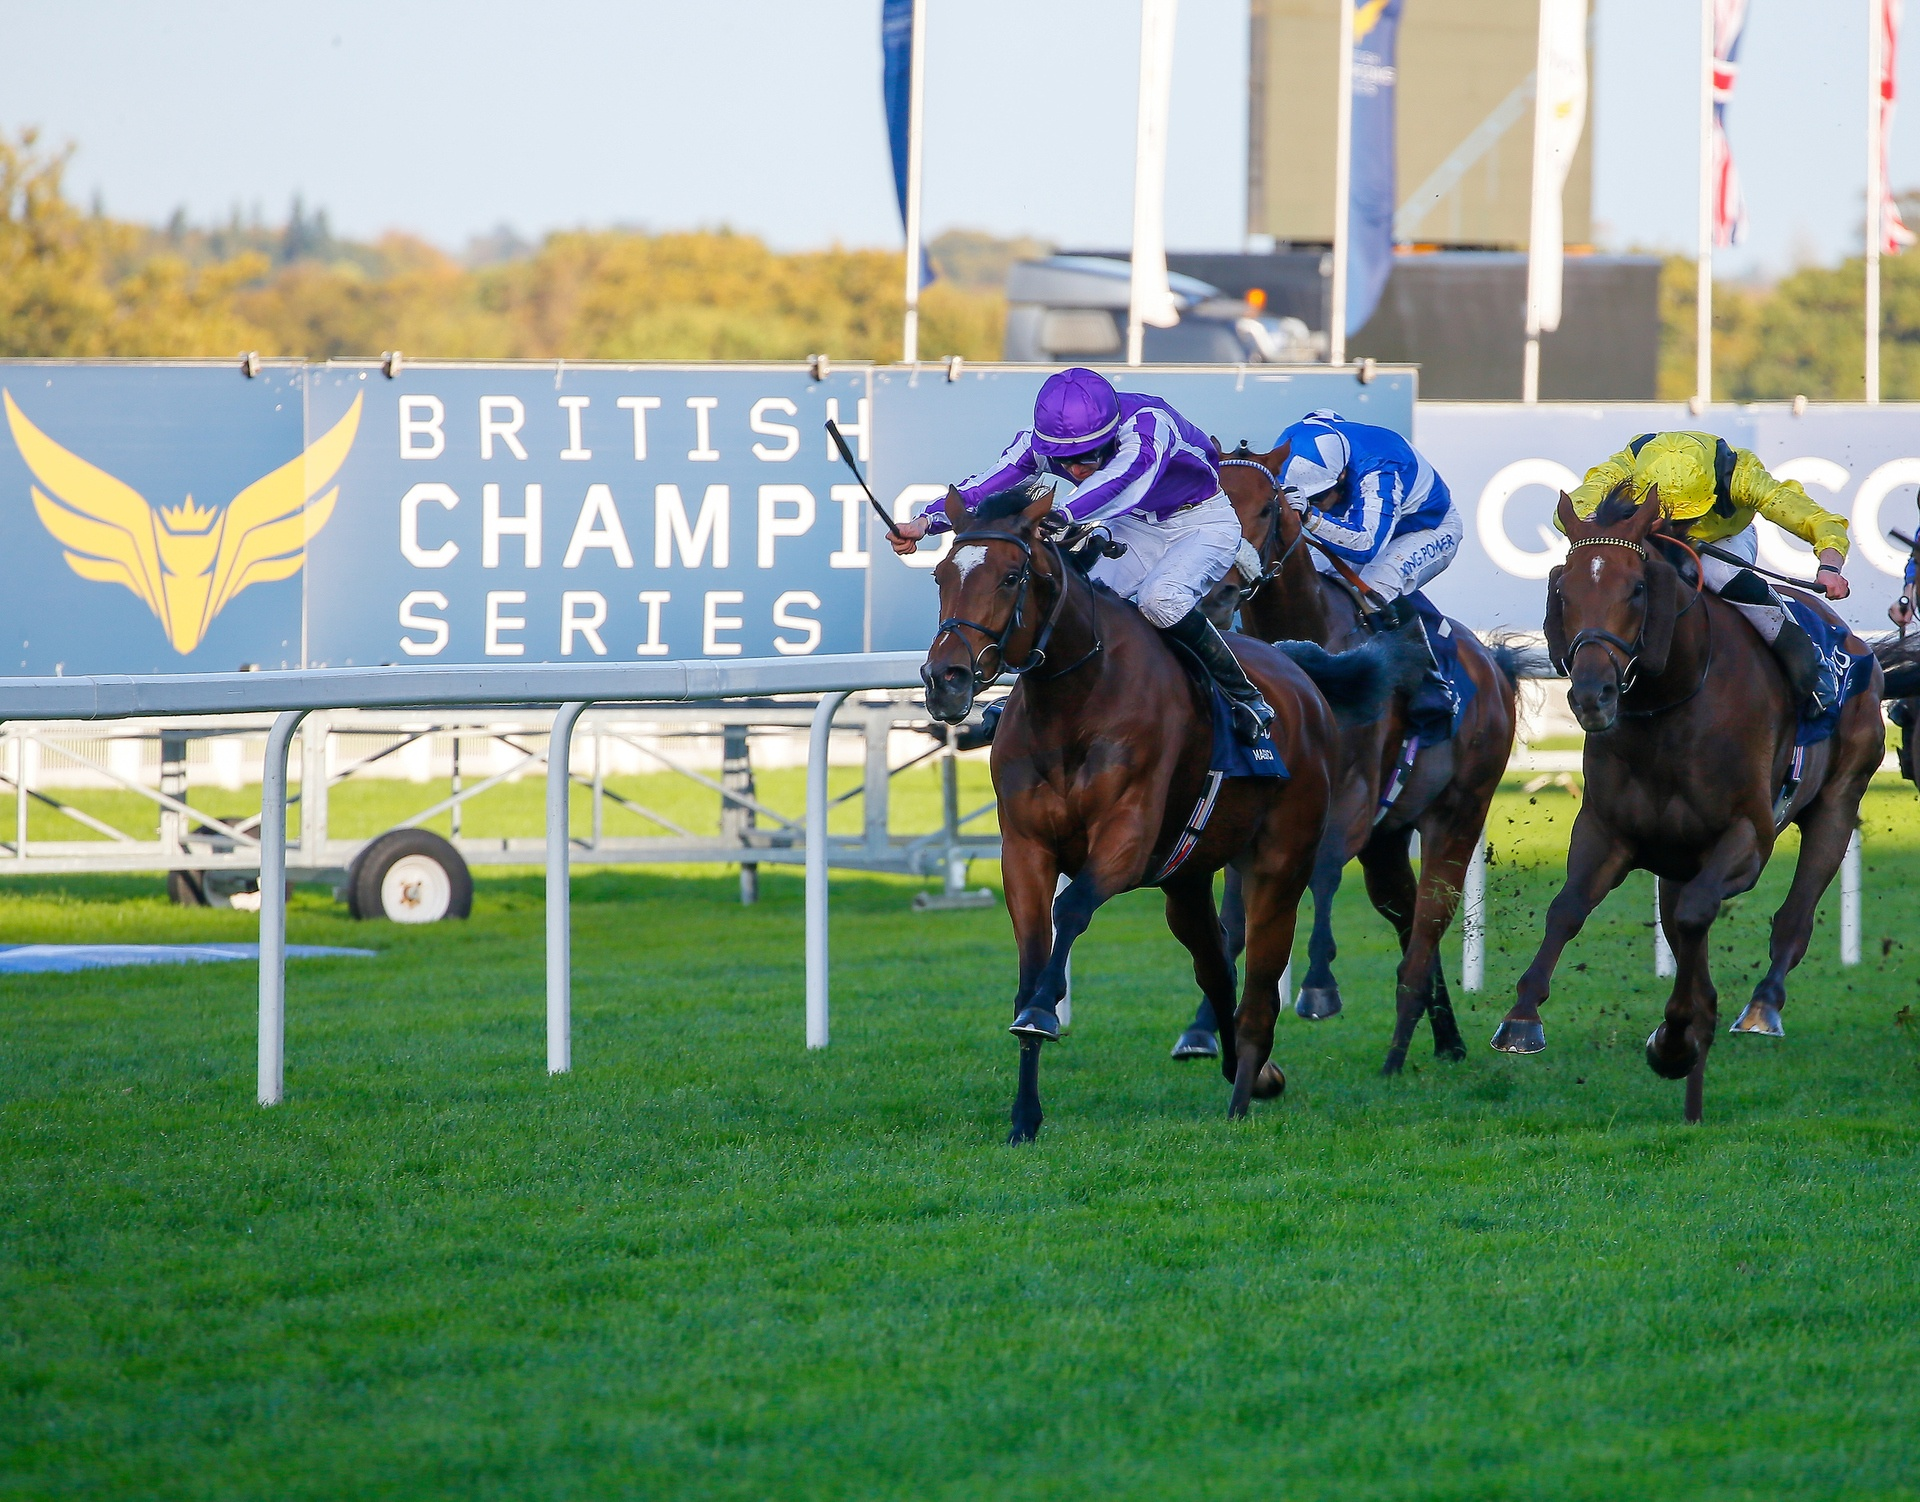 RMG TO DELIVER FULL VIEWING AND BETTING EXPERIENCE FOR QIPCO BRITISH CHAMPIONS DAY